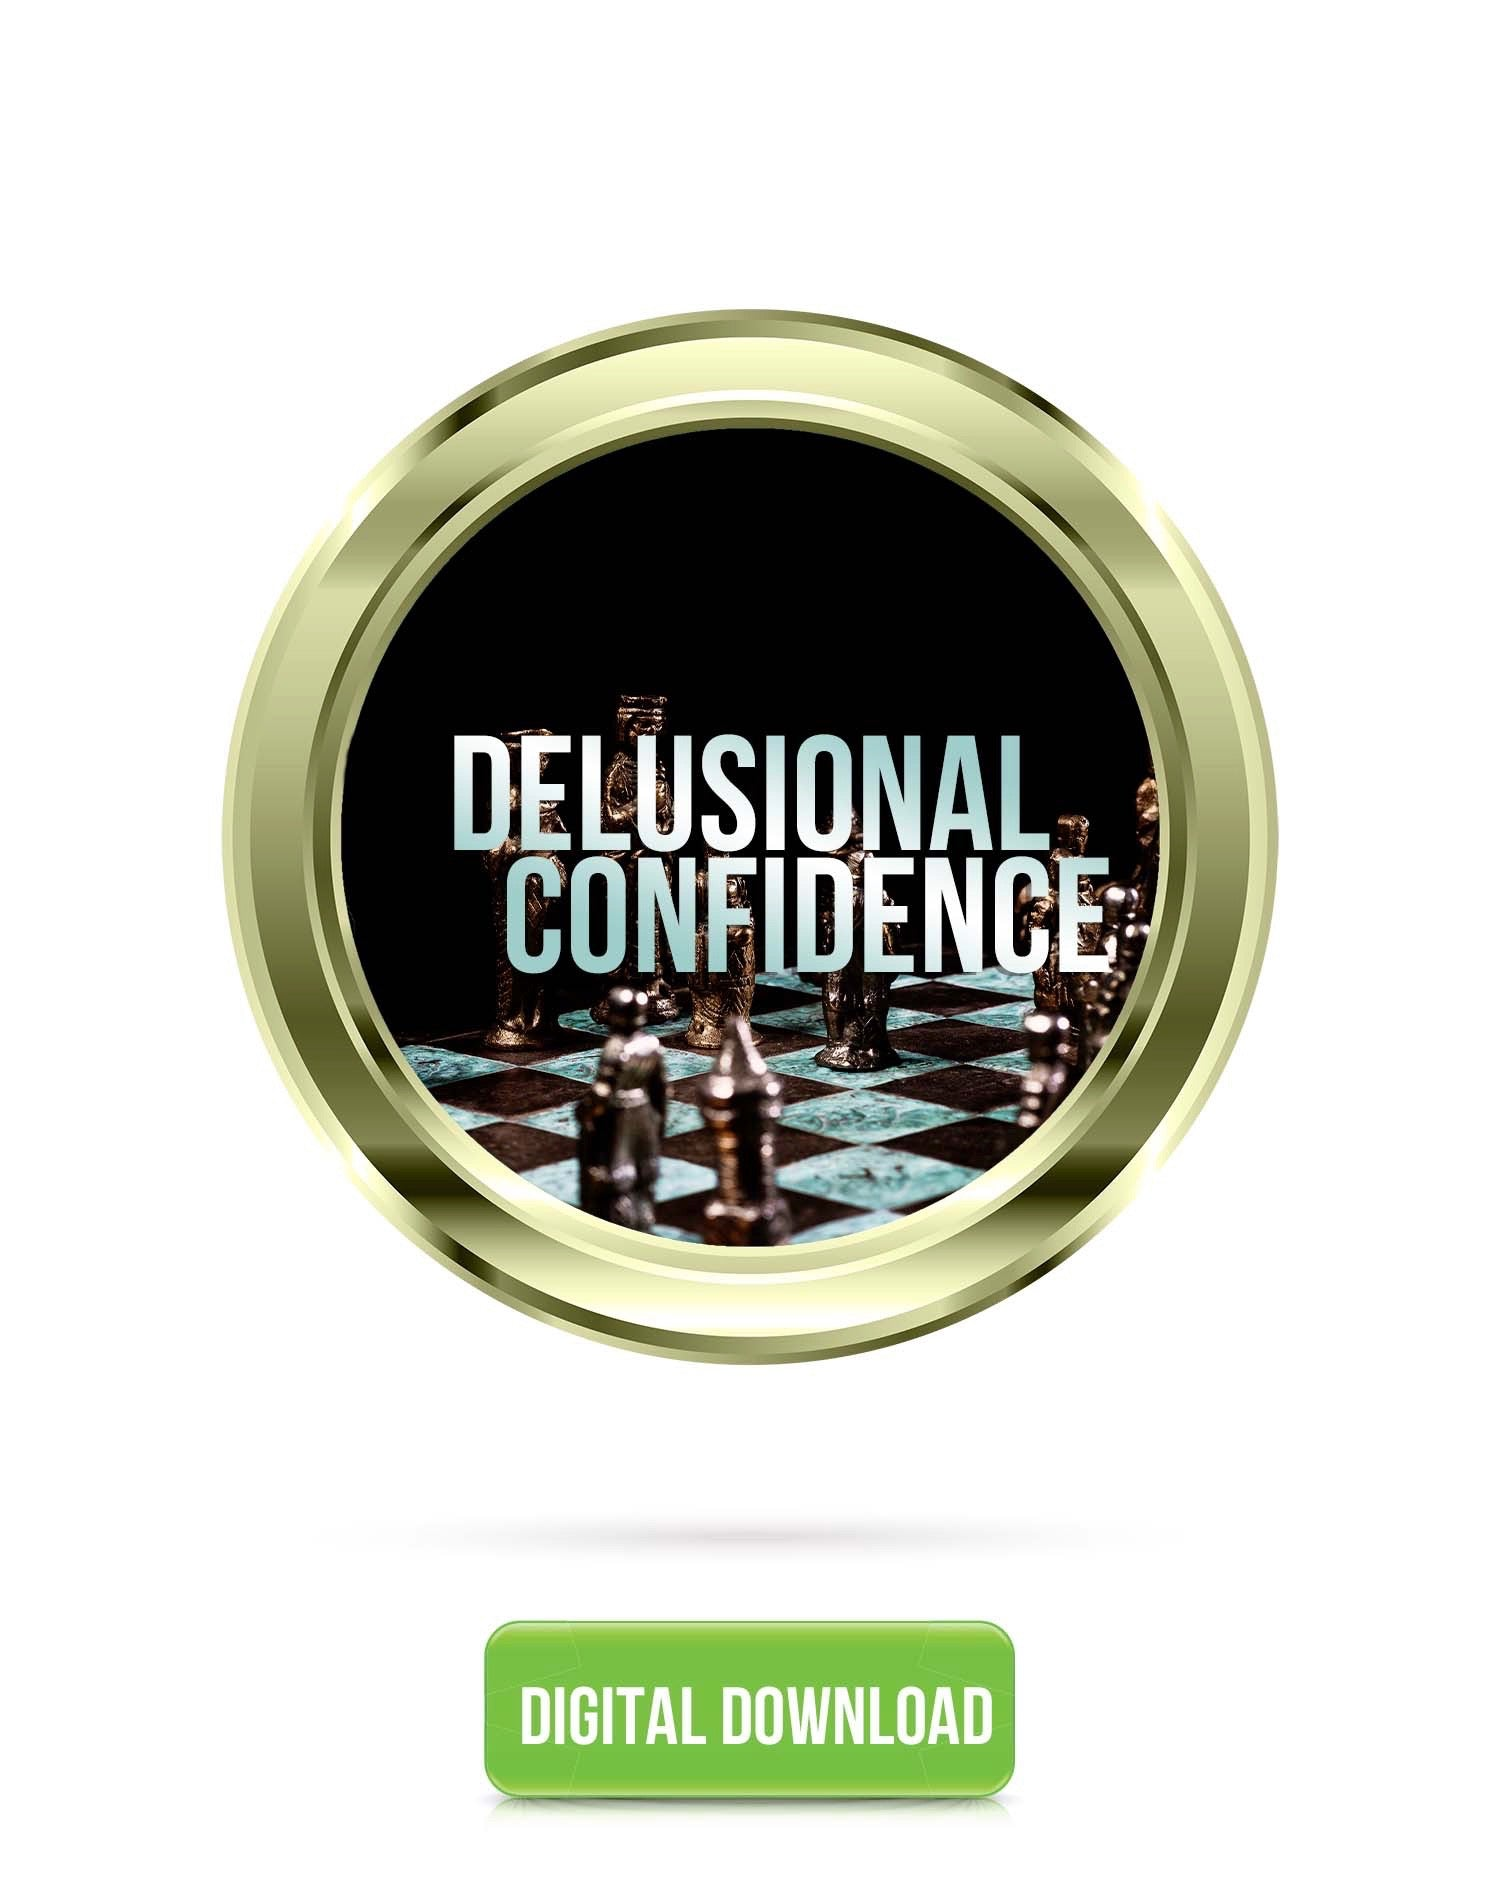 Delusional Confidence V3.1 | Courage, Fearlessness